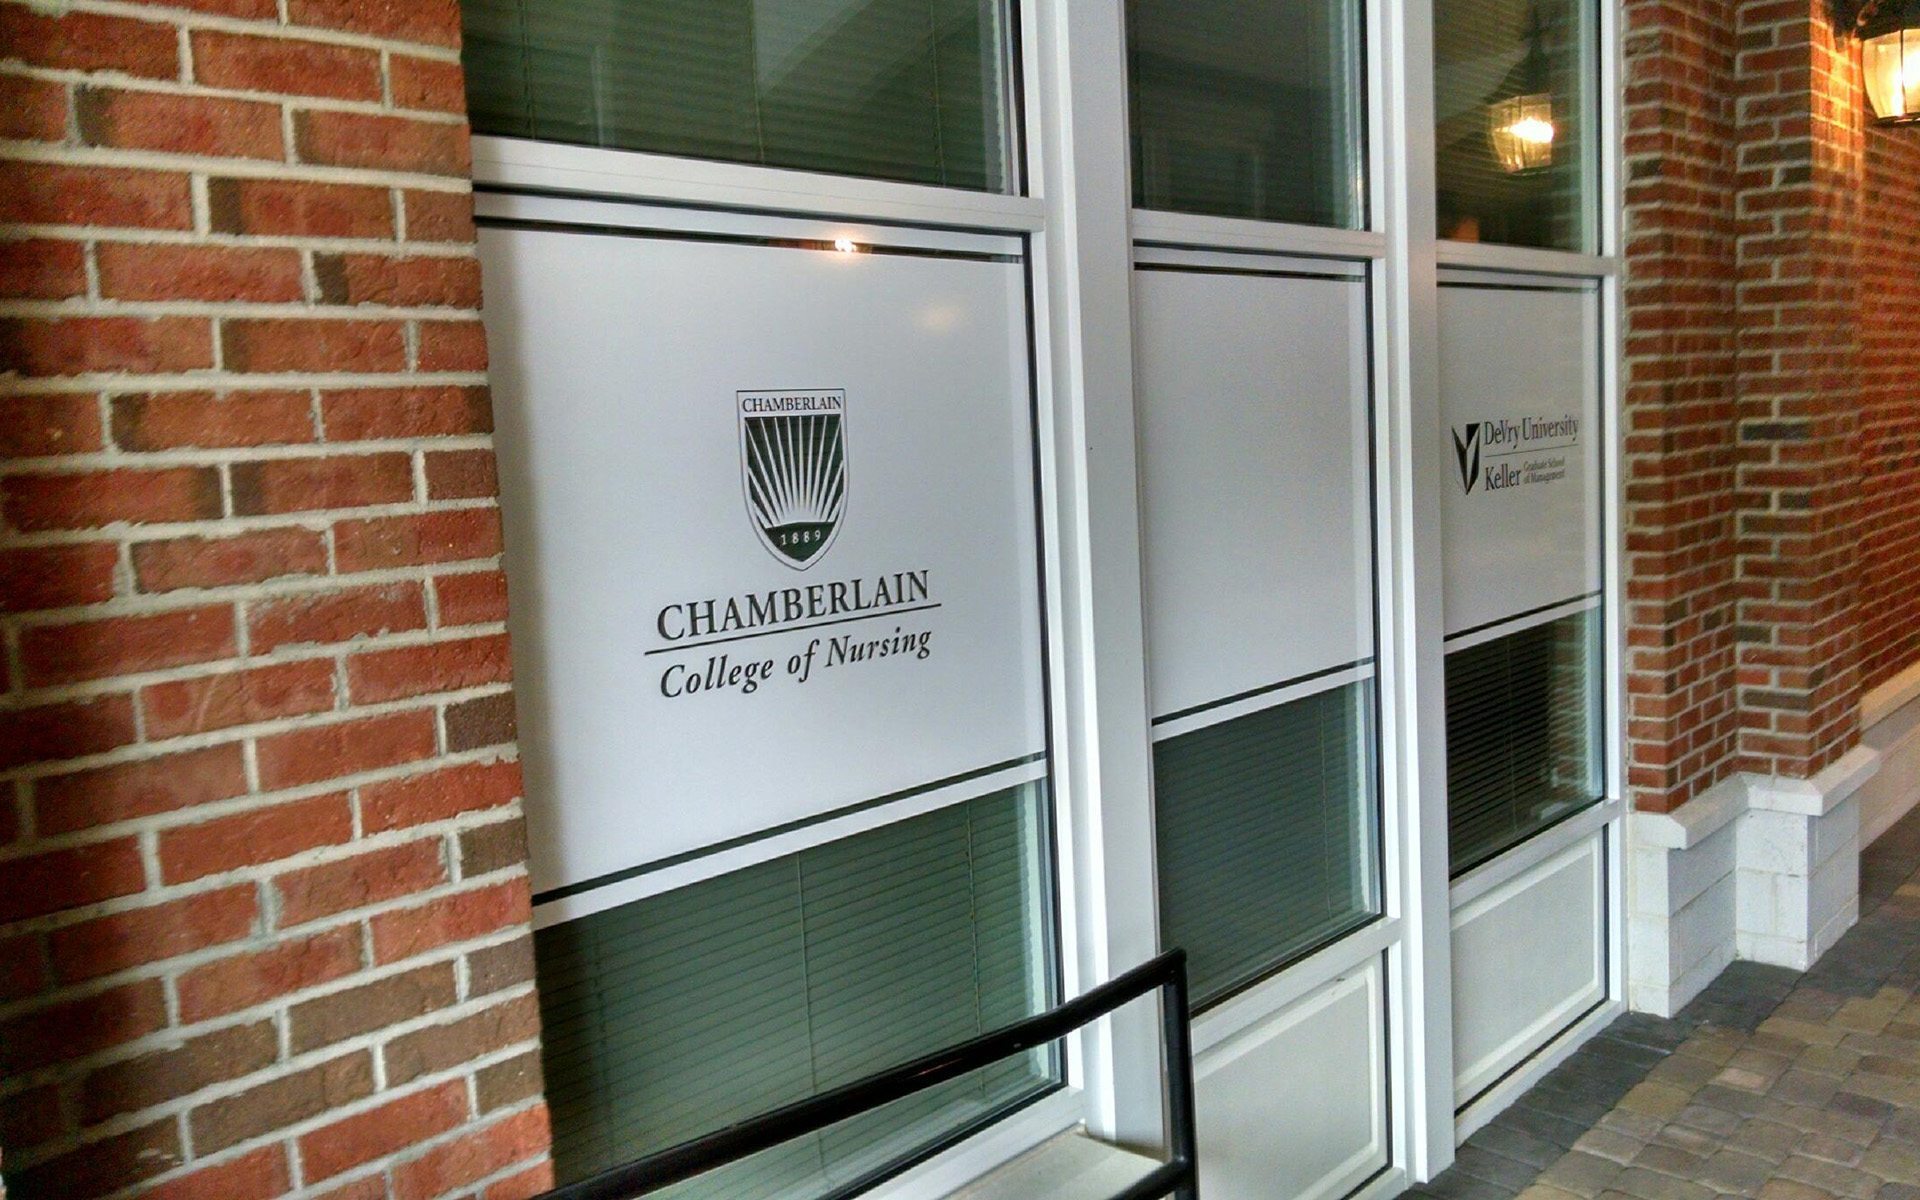 Chamberlain_College_of_Nursing_07